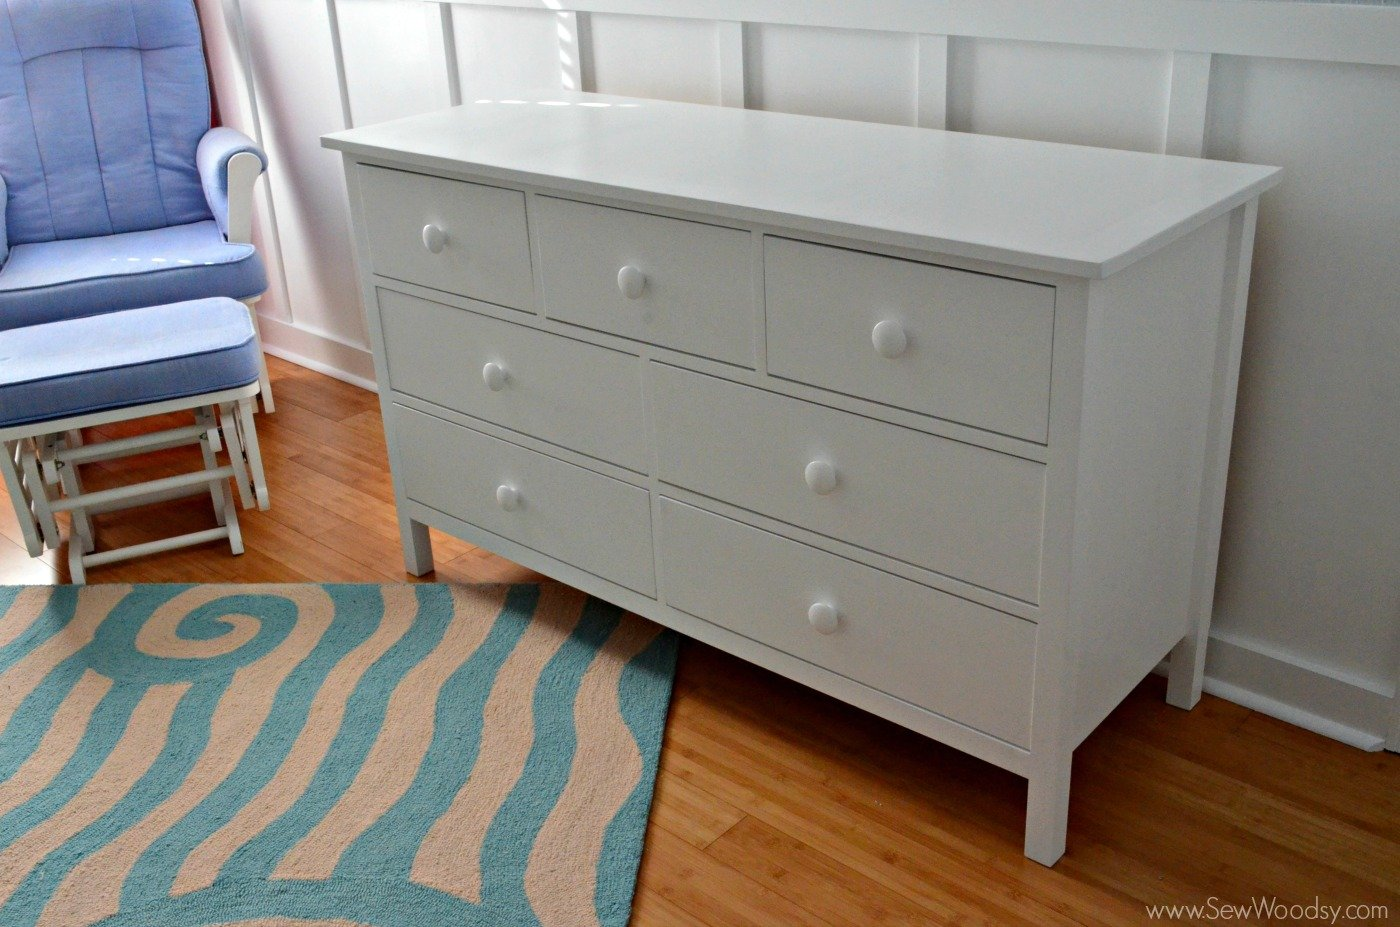 How to make dresser drawers - Kendall Dresser